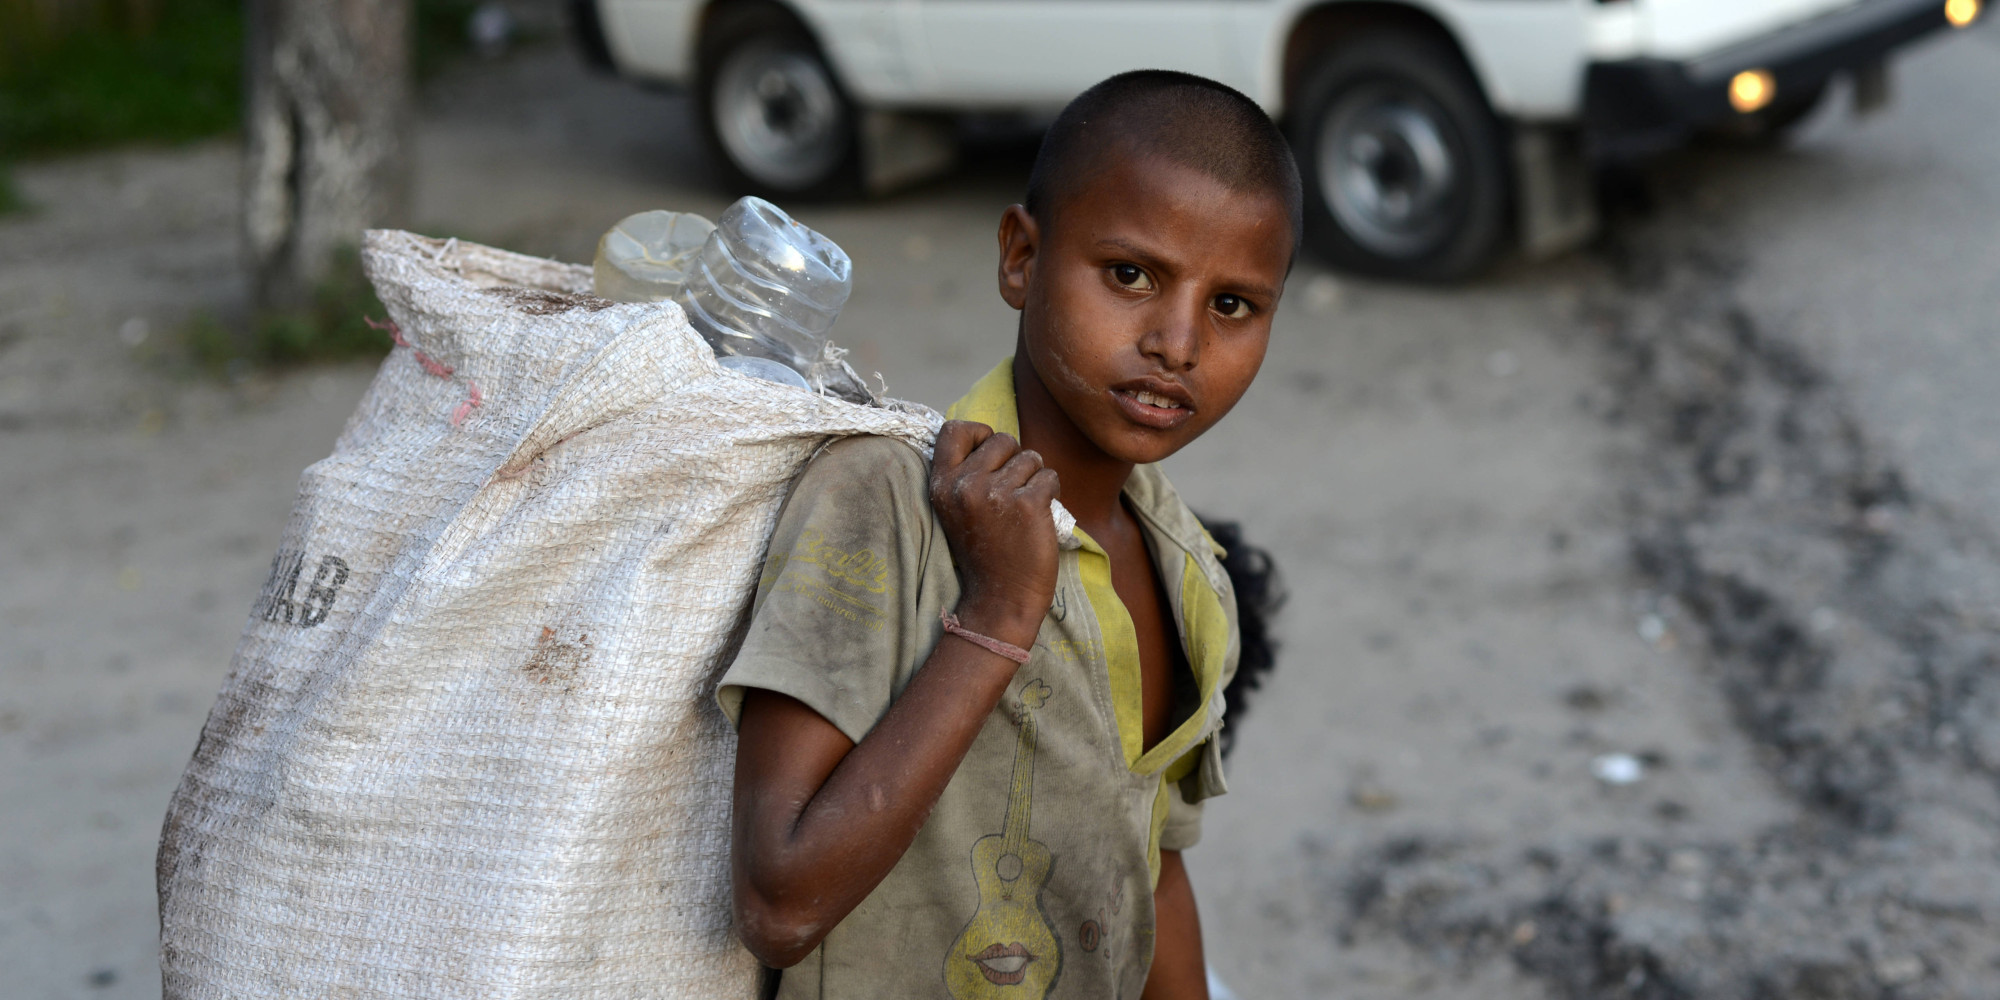 Baby Girl Wallpapers With Quotes India Legalizes Child Labor Amid Skyrocketing Rates